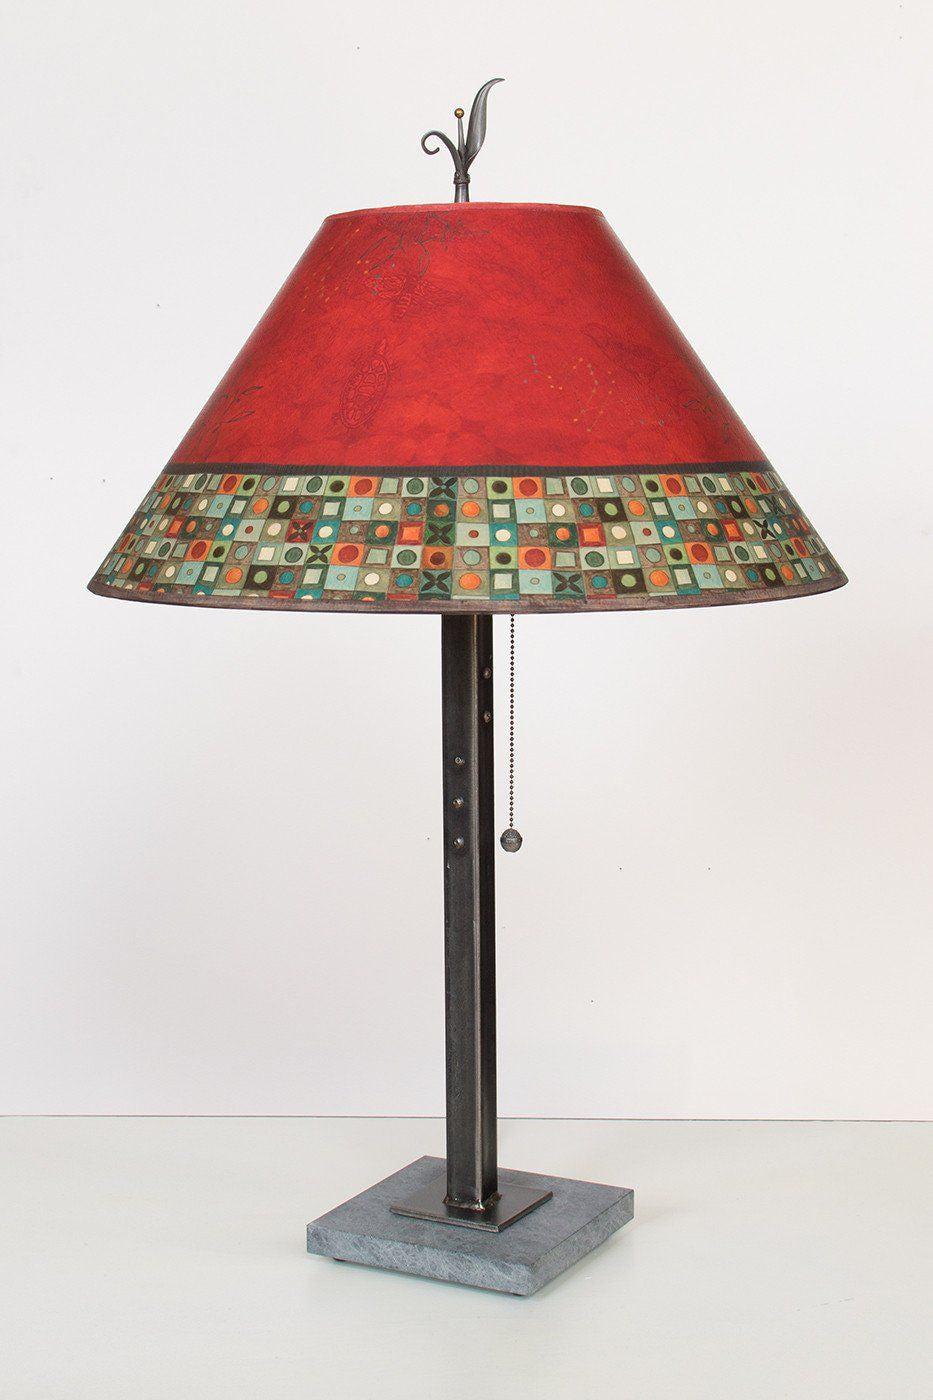 Steel Table Lamp on Italian Marble with Large Conical Shade in Red Mosaic